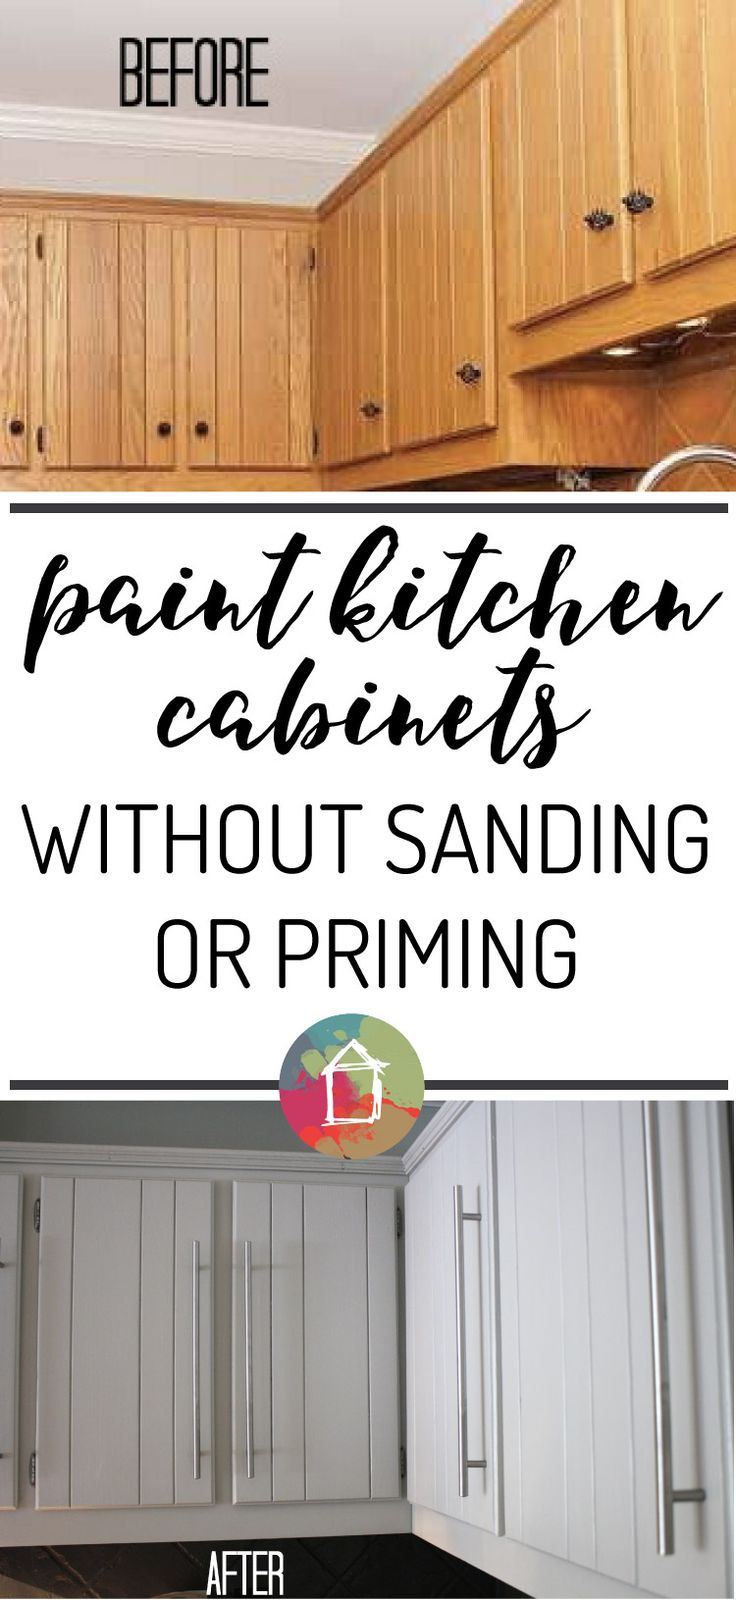 how to paint kitchen cabinets: no painting/sanding! | kitchens